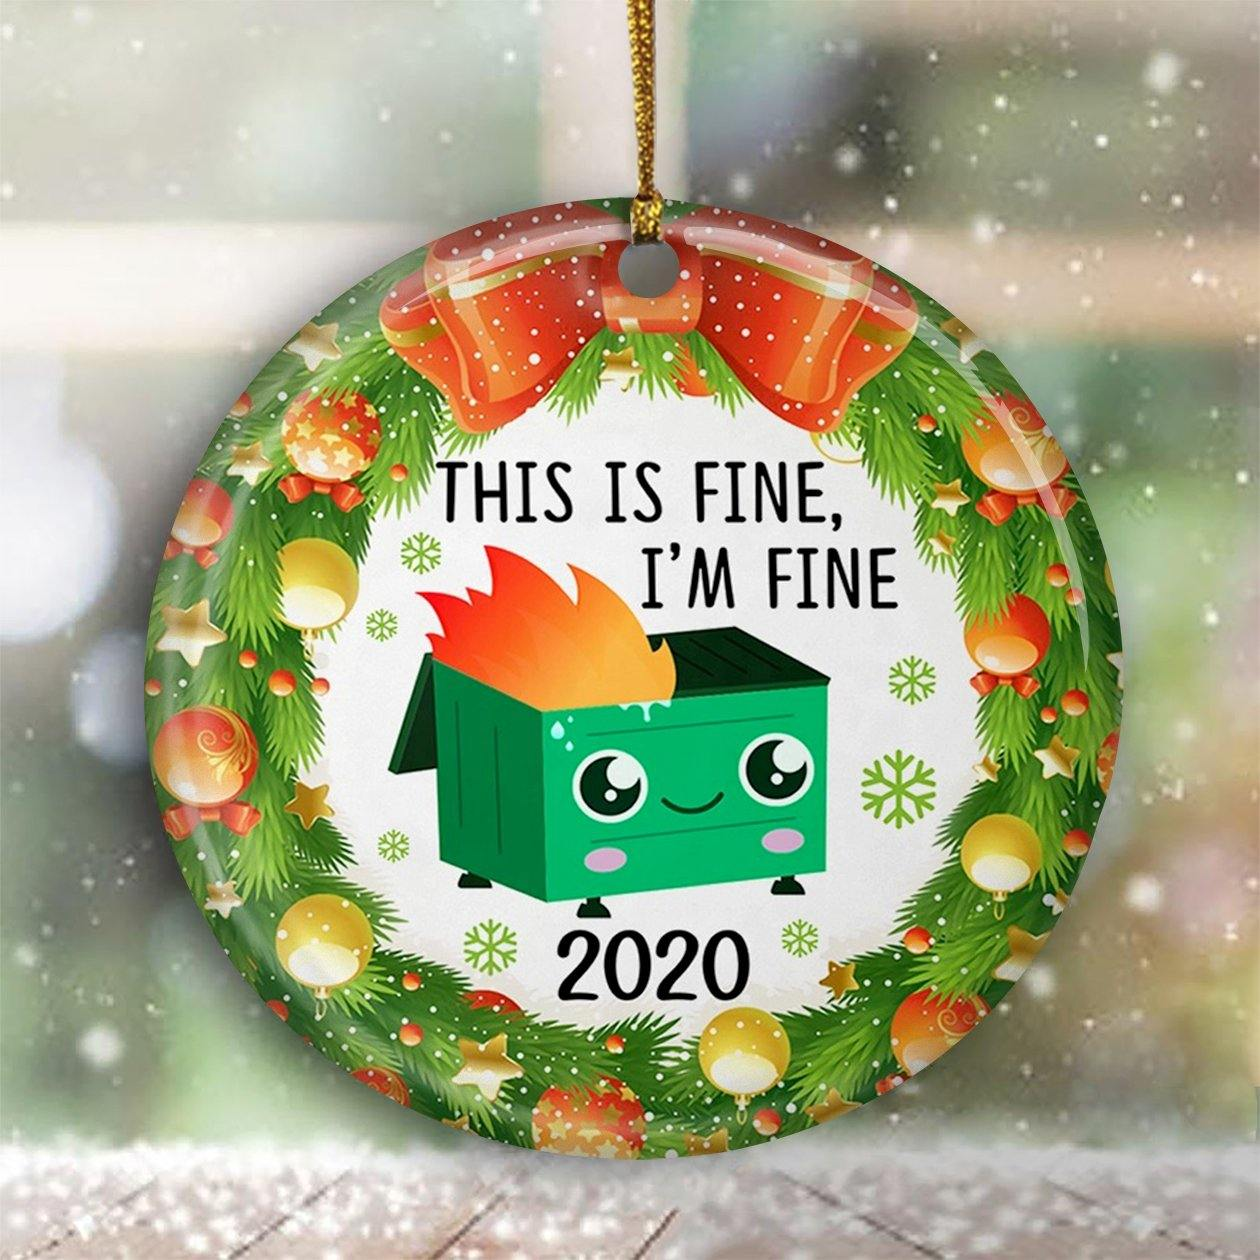 2020 Dumpster Fire Ornament This Is Fine And I Am Fine Funny Pandemic Christmas Ornament